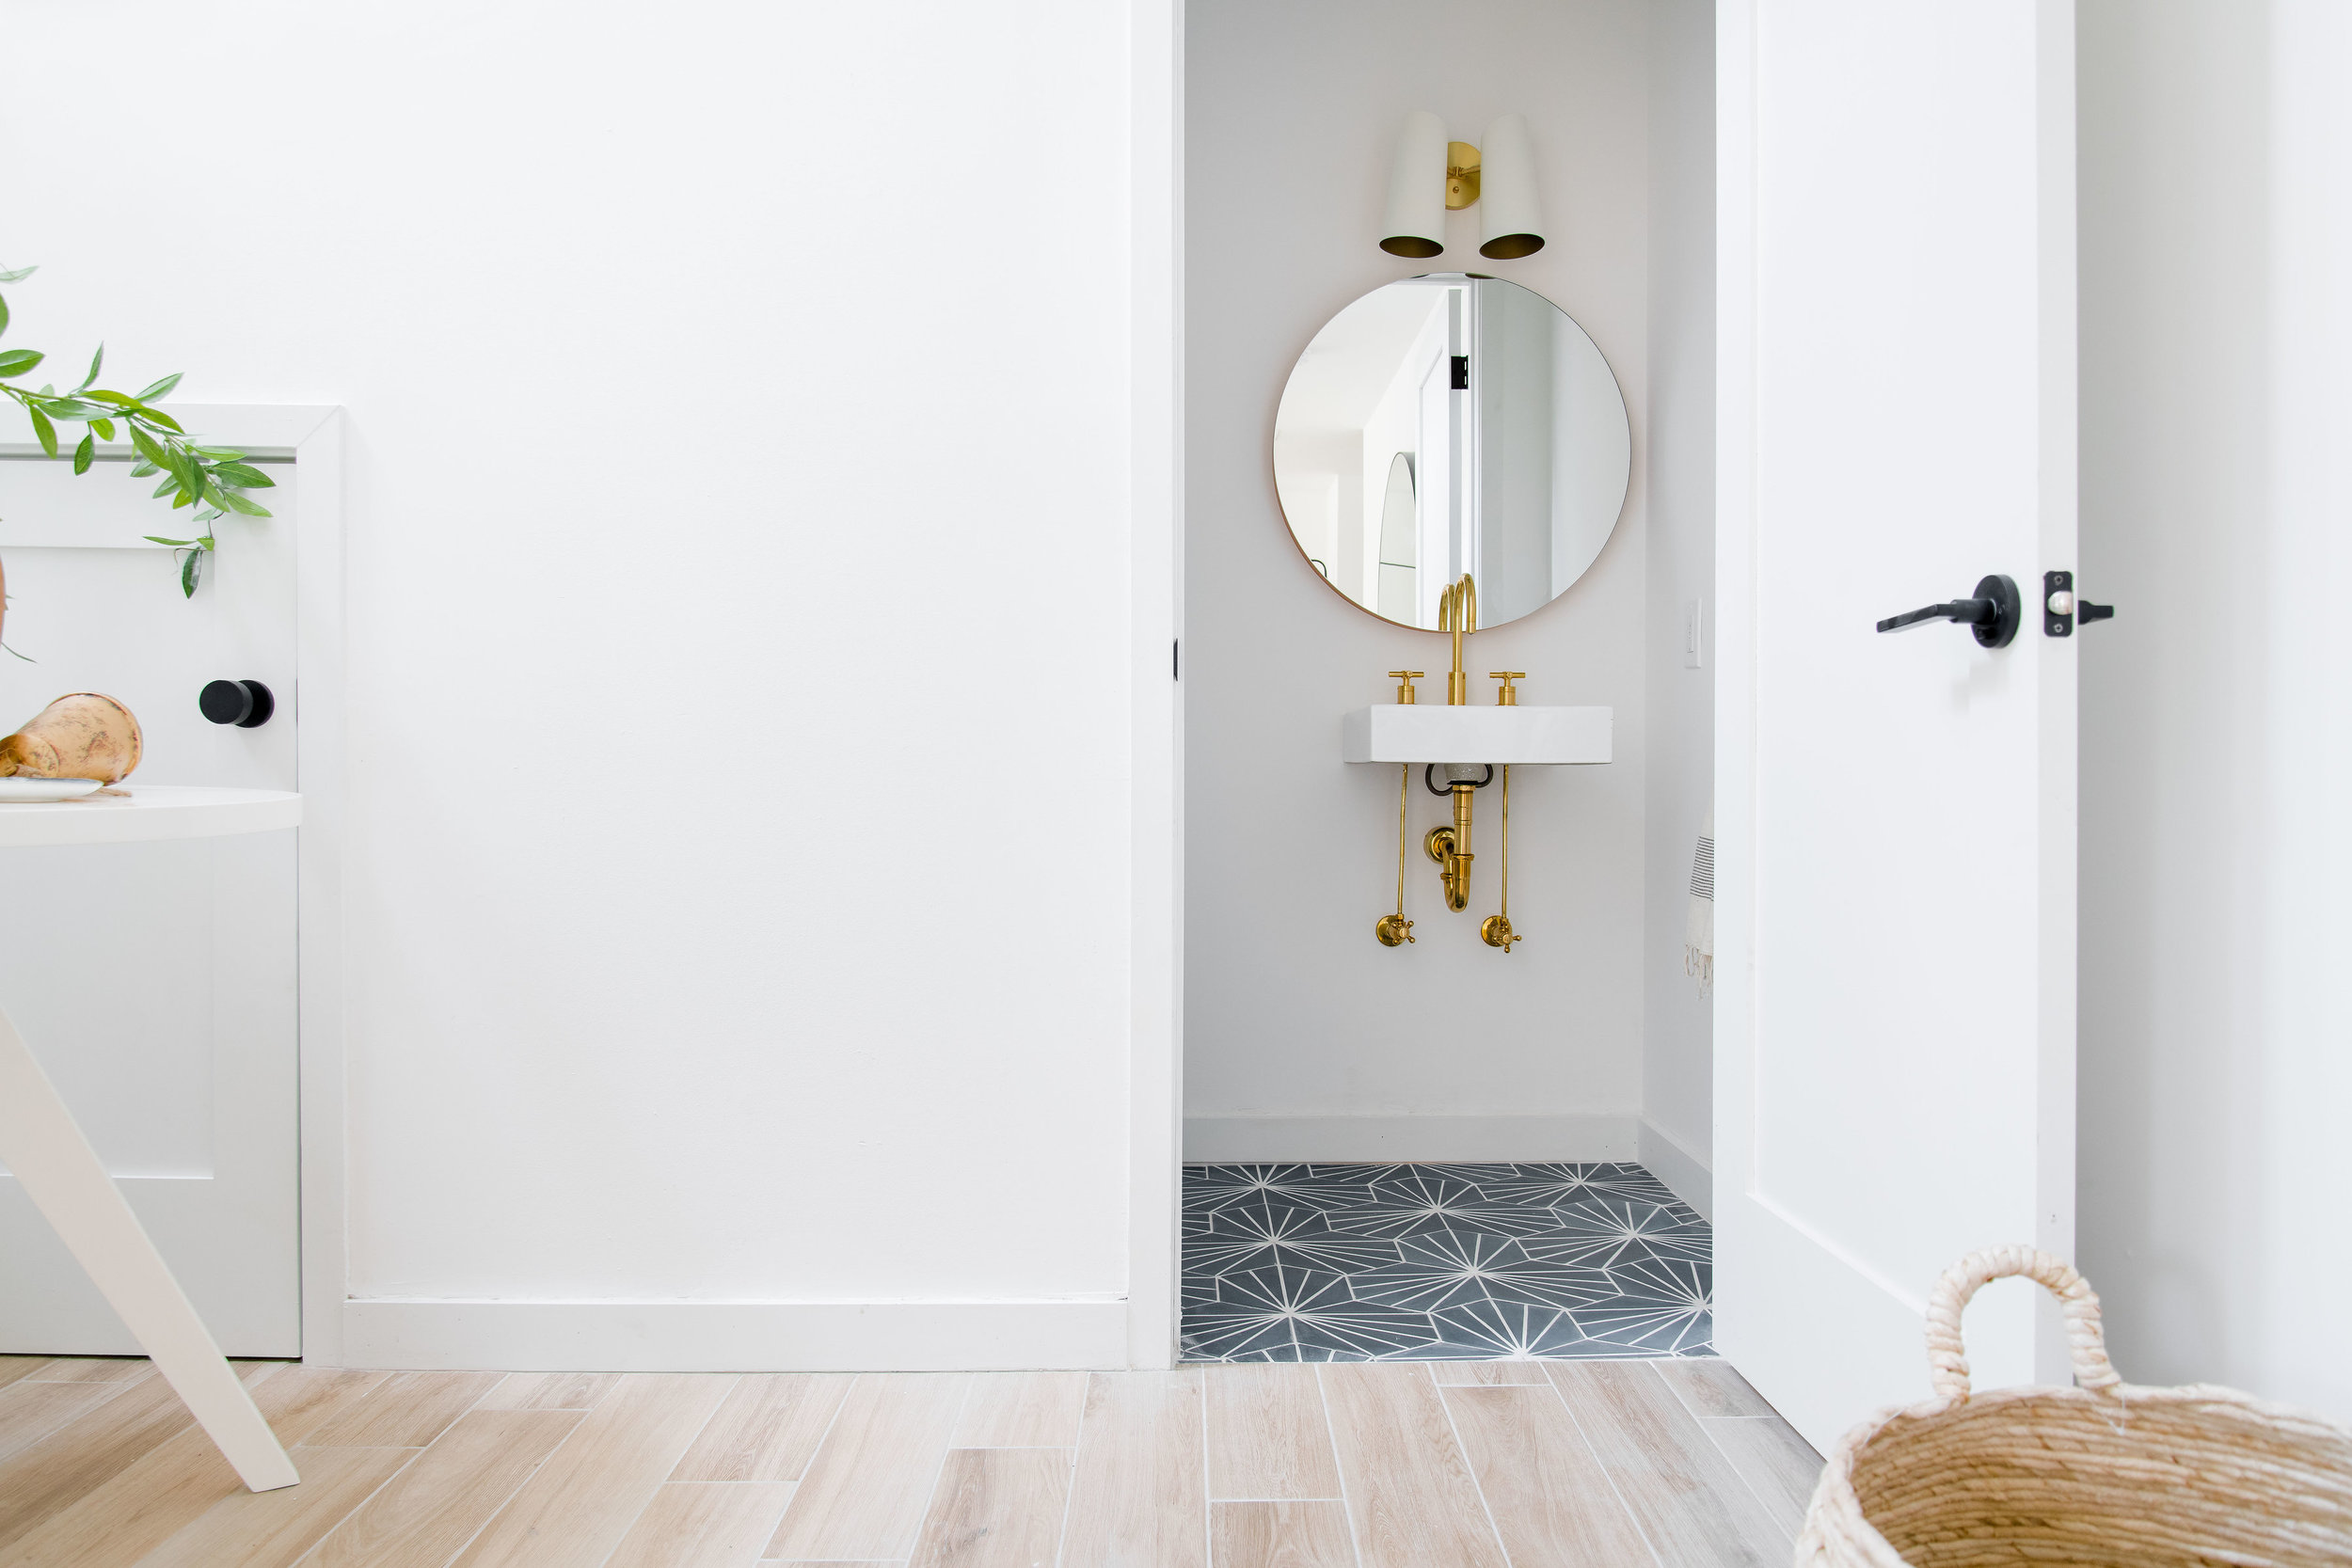 powder bathroom with patterned tile - the habitat collective interior design - #projectpeachy